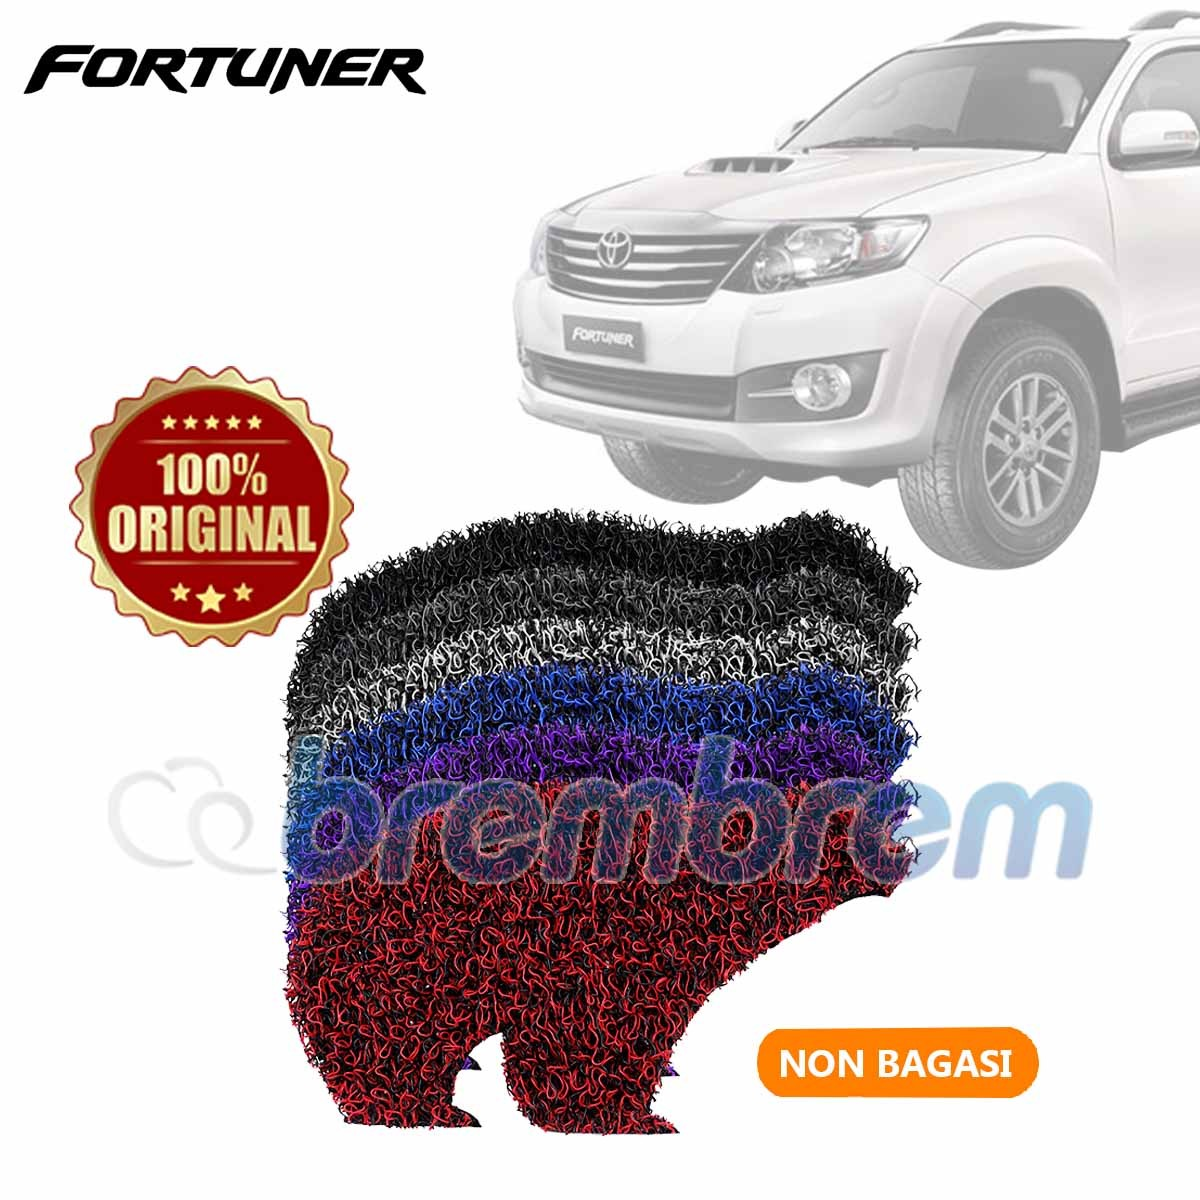 KARPET FIRST CLASS NON BAGASI TOYOTA FORTUNER